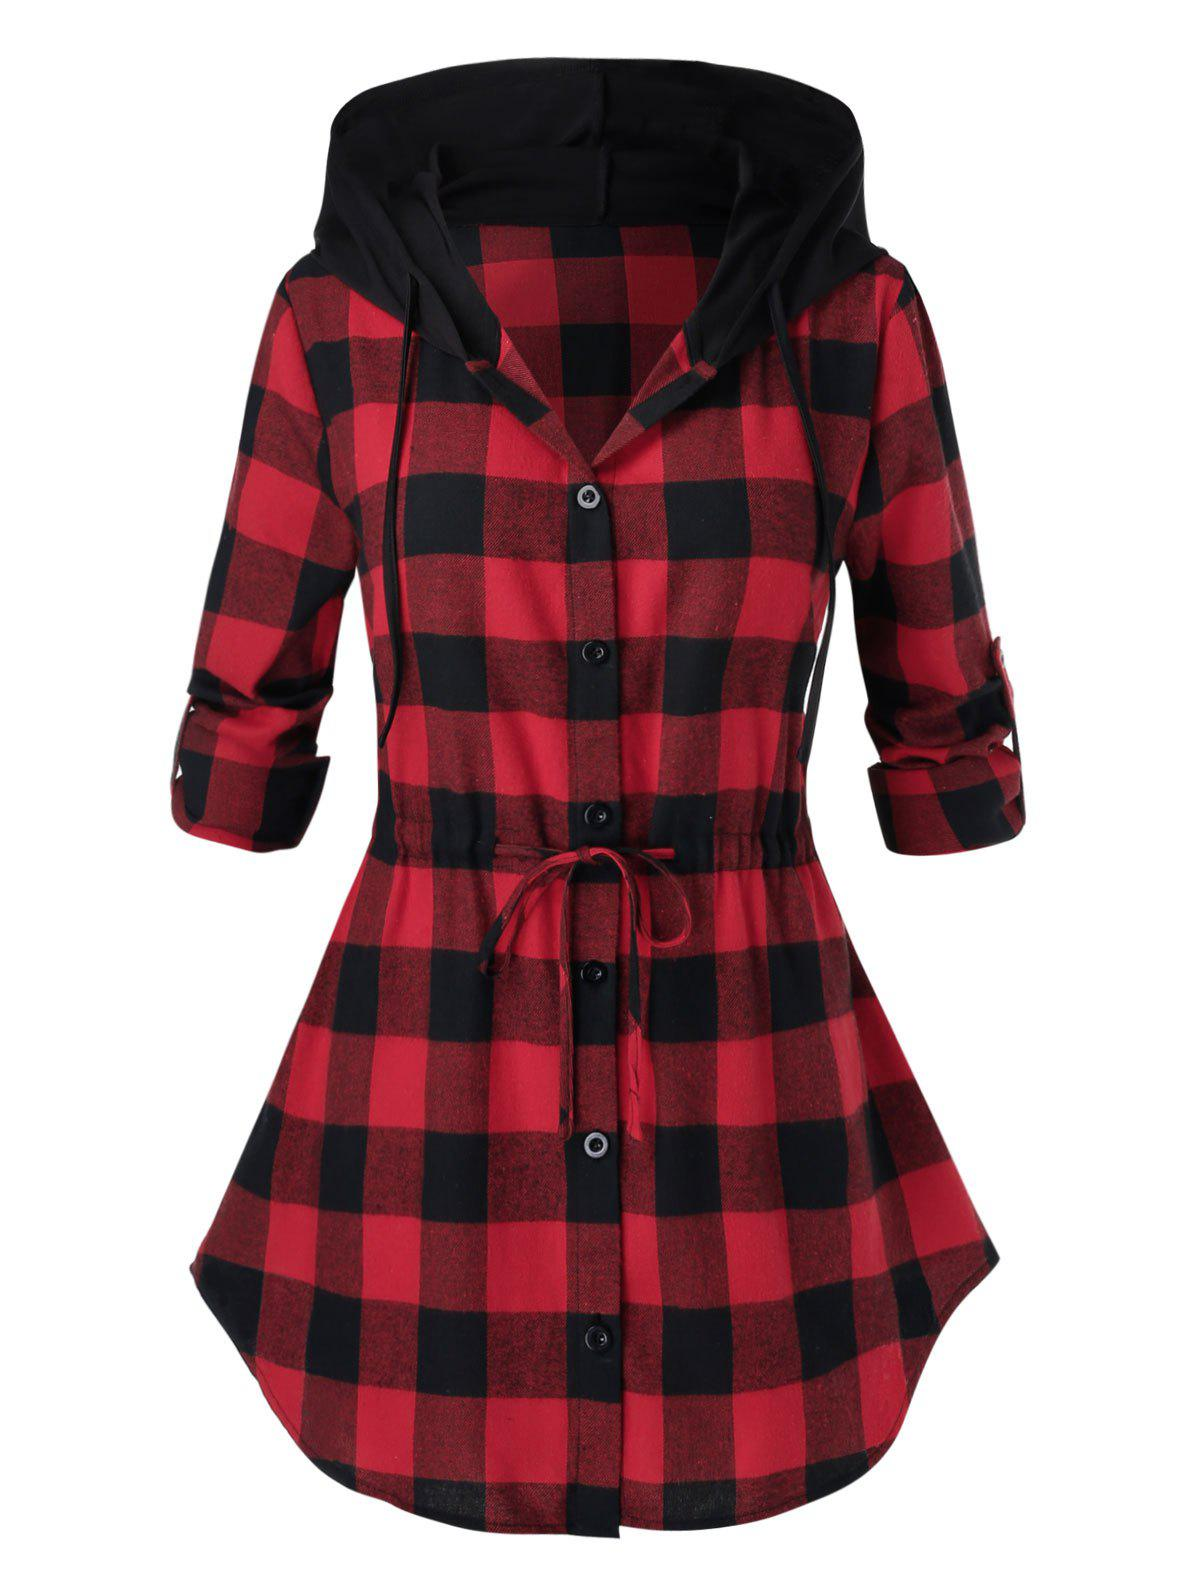 Plus Size Hooded Drawstring Plaid Curved Blouse - CHERRY RED L